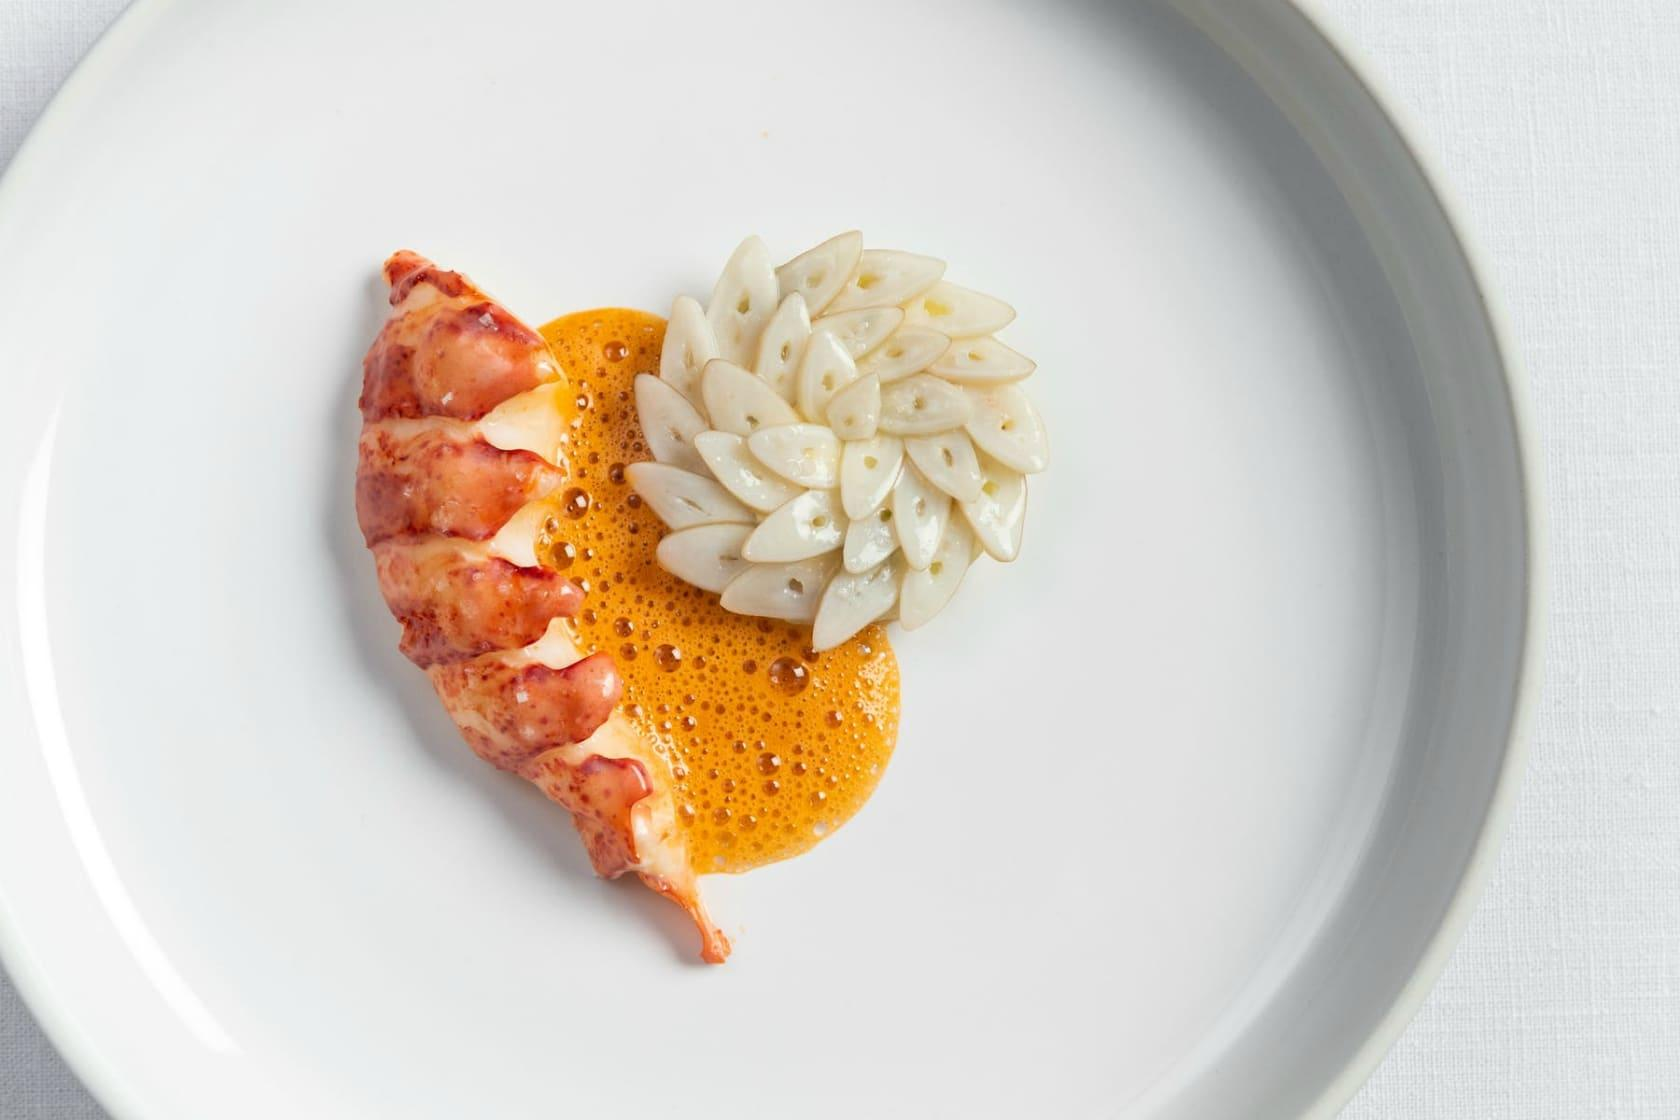 Lobster with razor clam and sea urchin